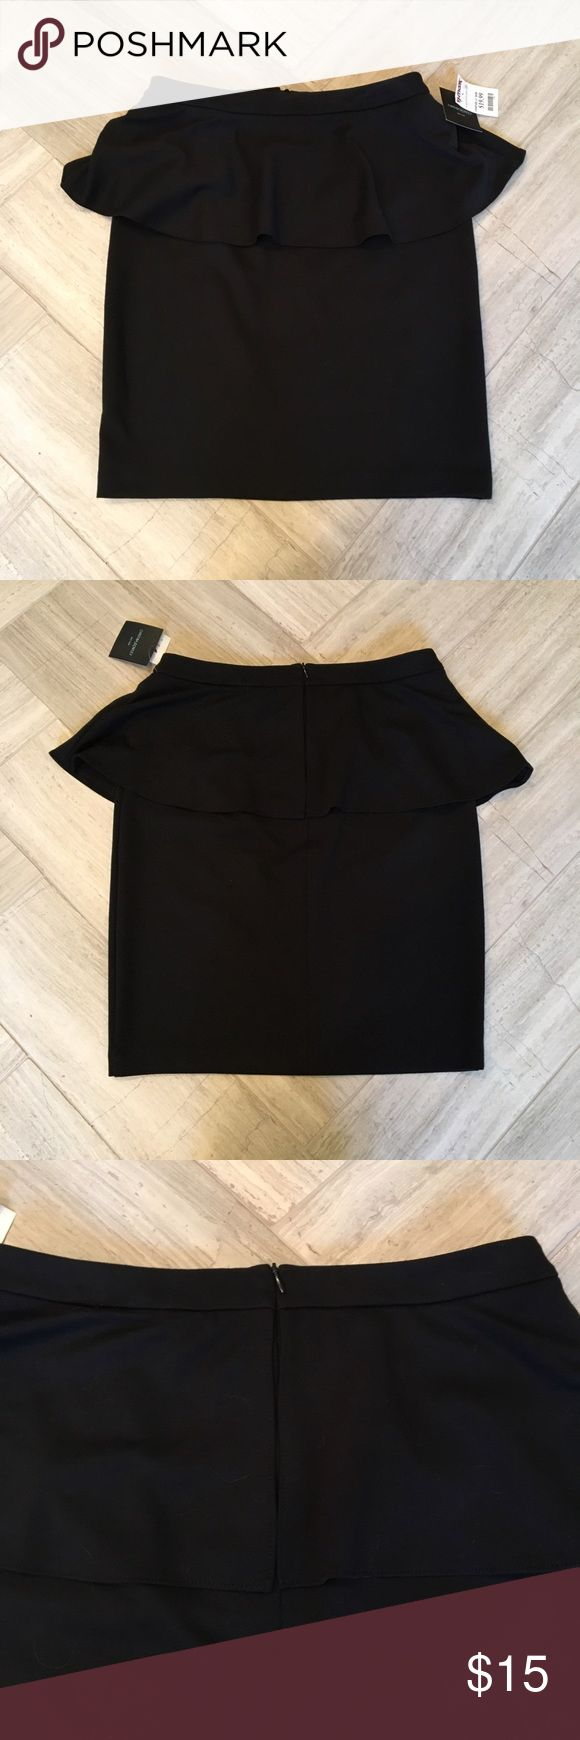 Cynthia Rowley Peplum Skirt Super cute and simple black peplum skirt, NWT. Very soft and stretchy fabric. Perfect with a blouse for work! Cynthia Rowley Skirts